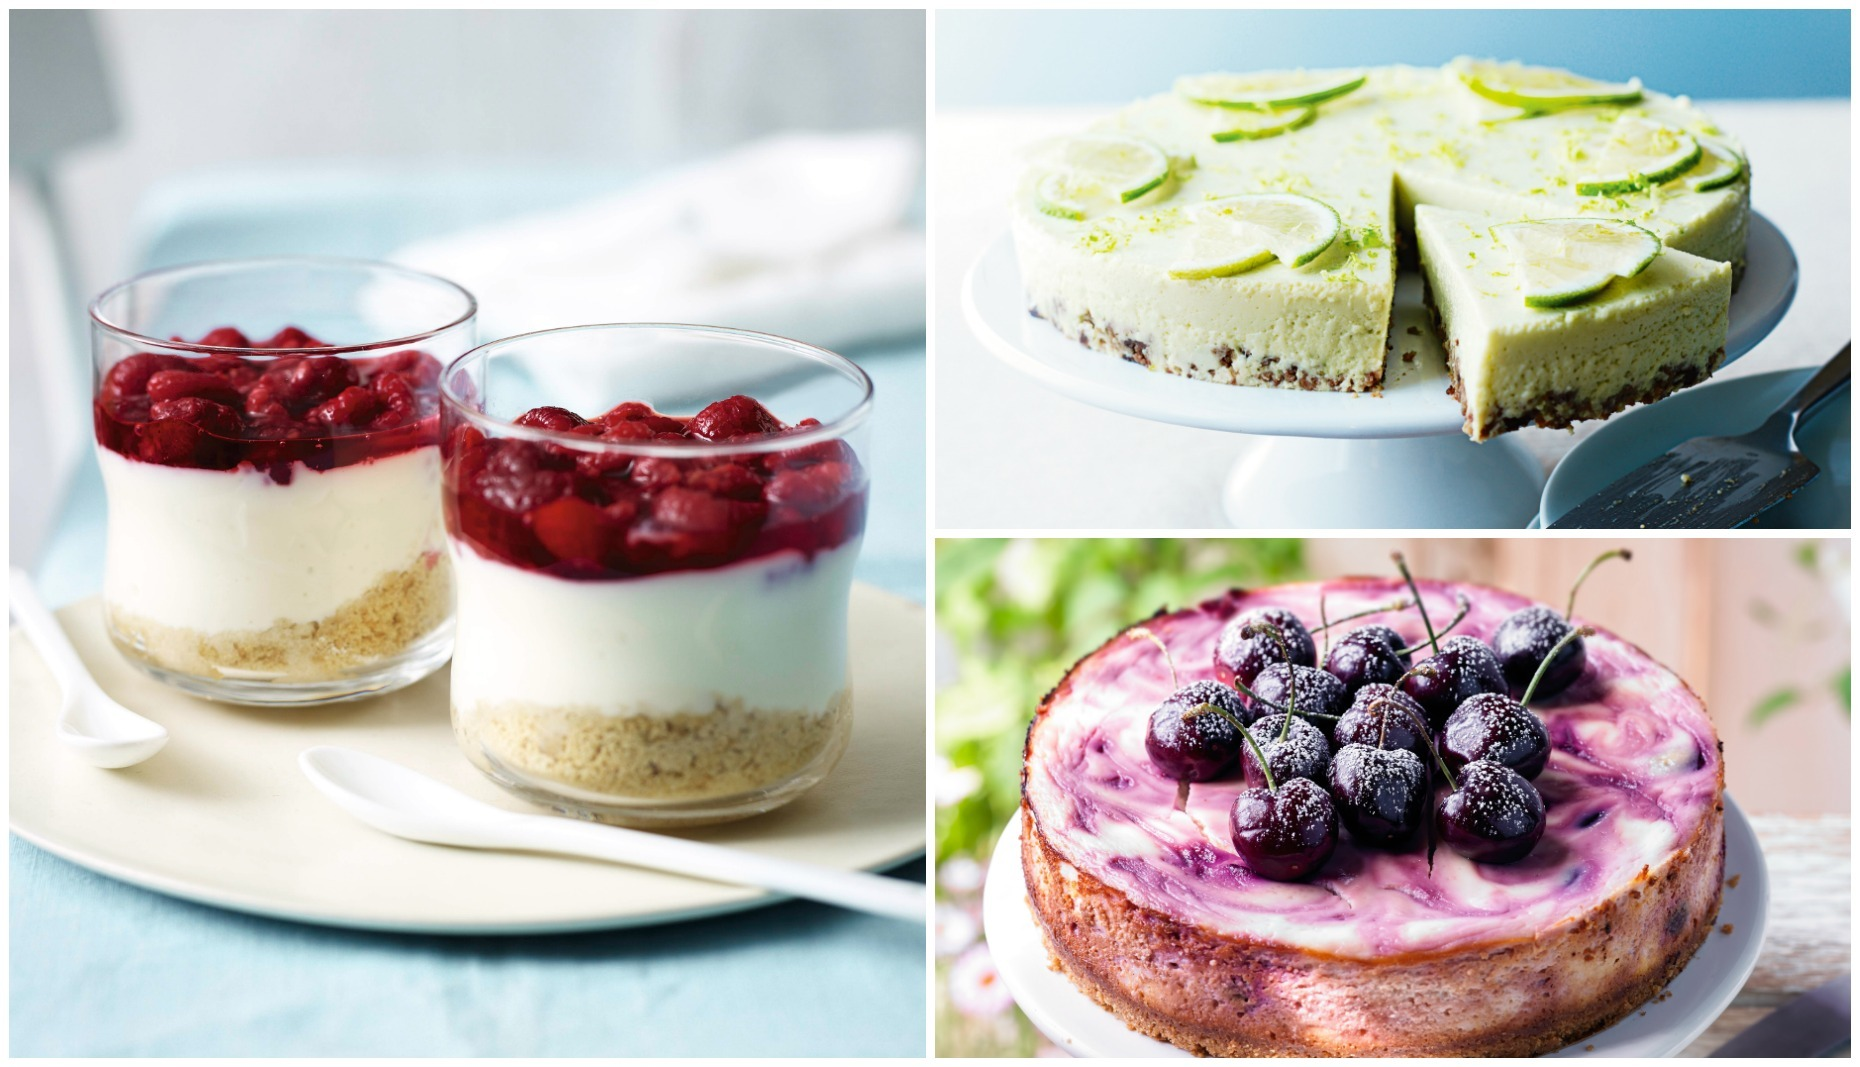 These delicious cheesecake recipes are easy to make (Waitrose)